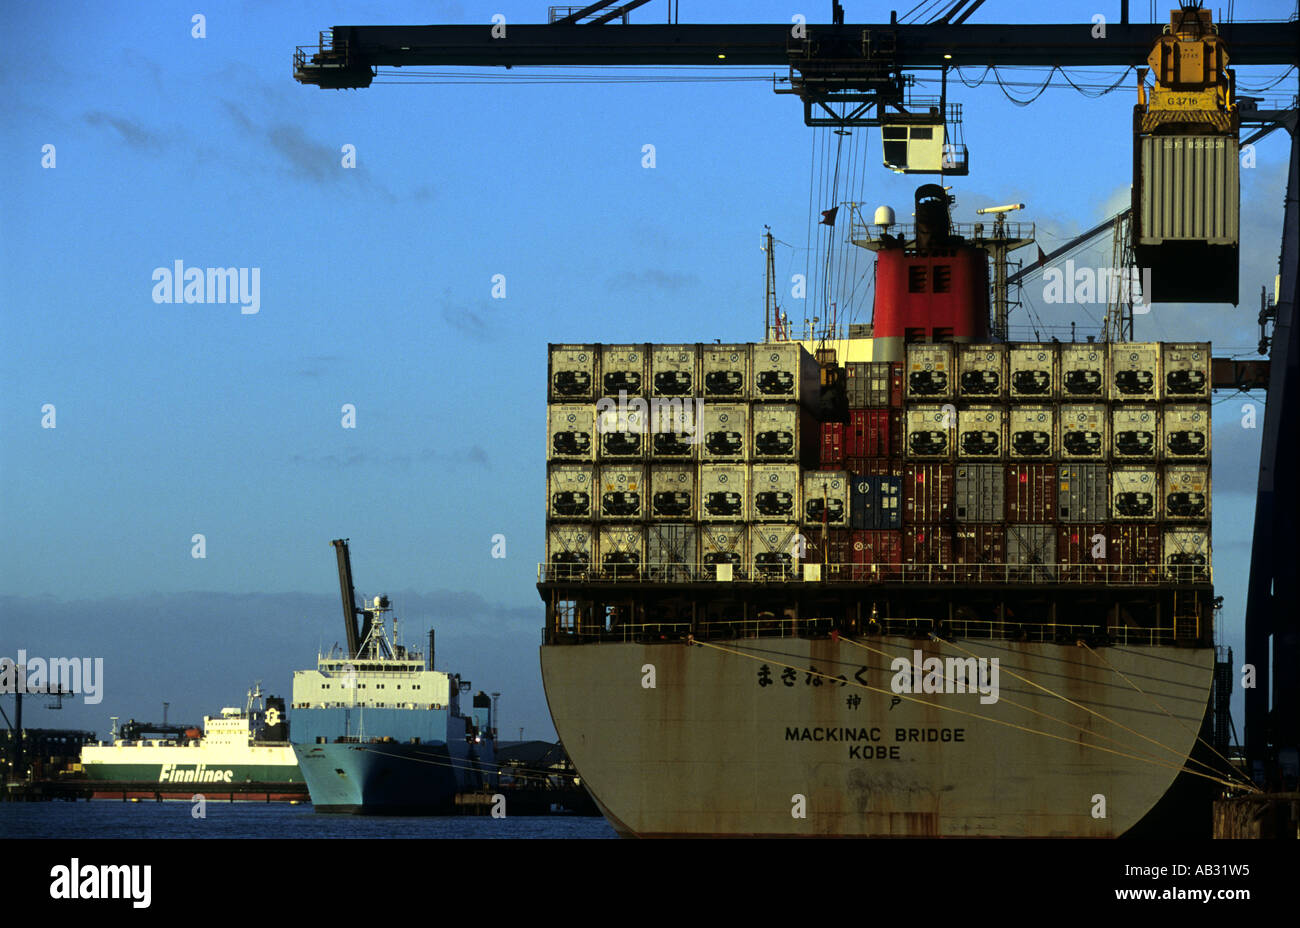 K-Line container ship Mackinac Bridge unloading at Landguard terminal at the Port of Felixstowe in Suffolk,  UK. - Stock Image